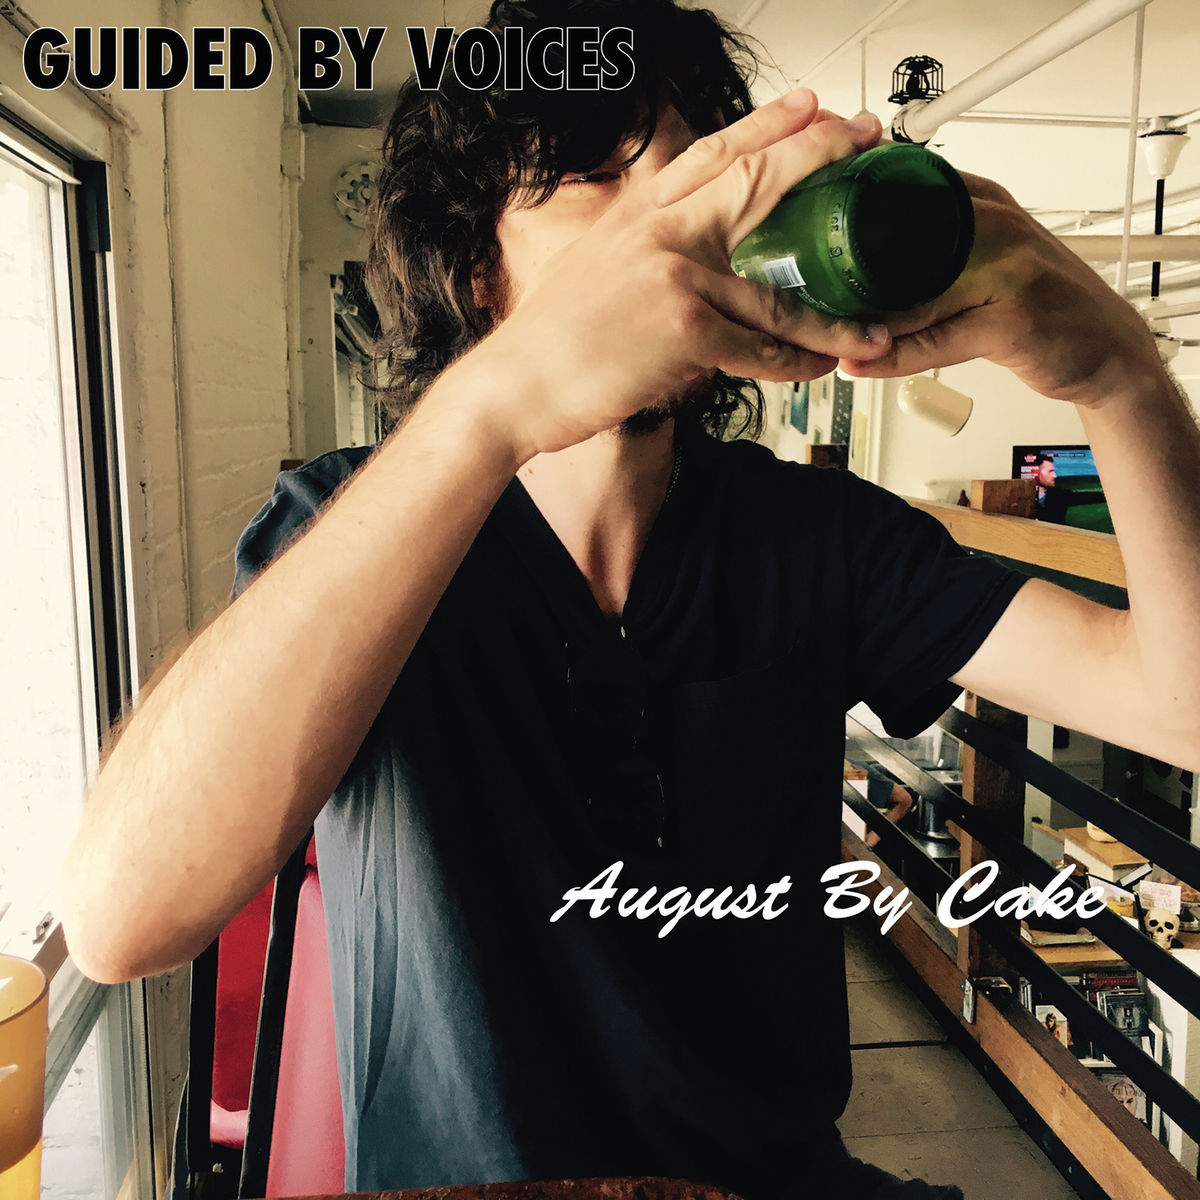 004437b8 Guided by Voices premiere their first ever double album, August by Cake: Stream